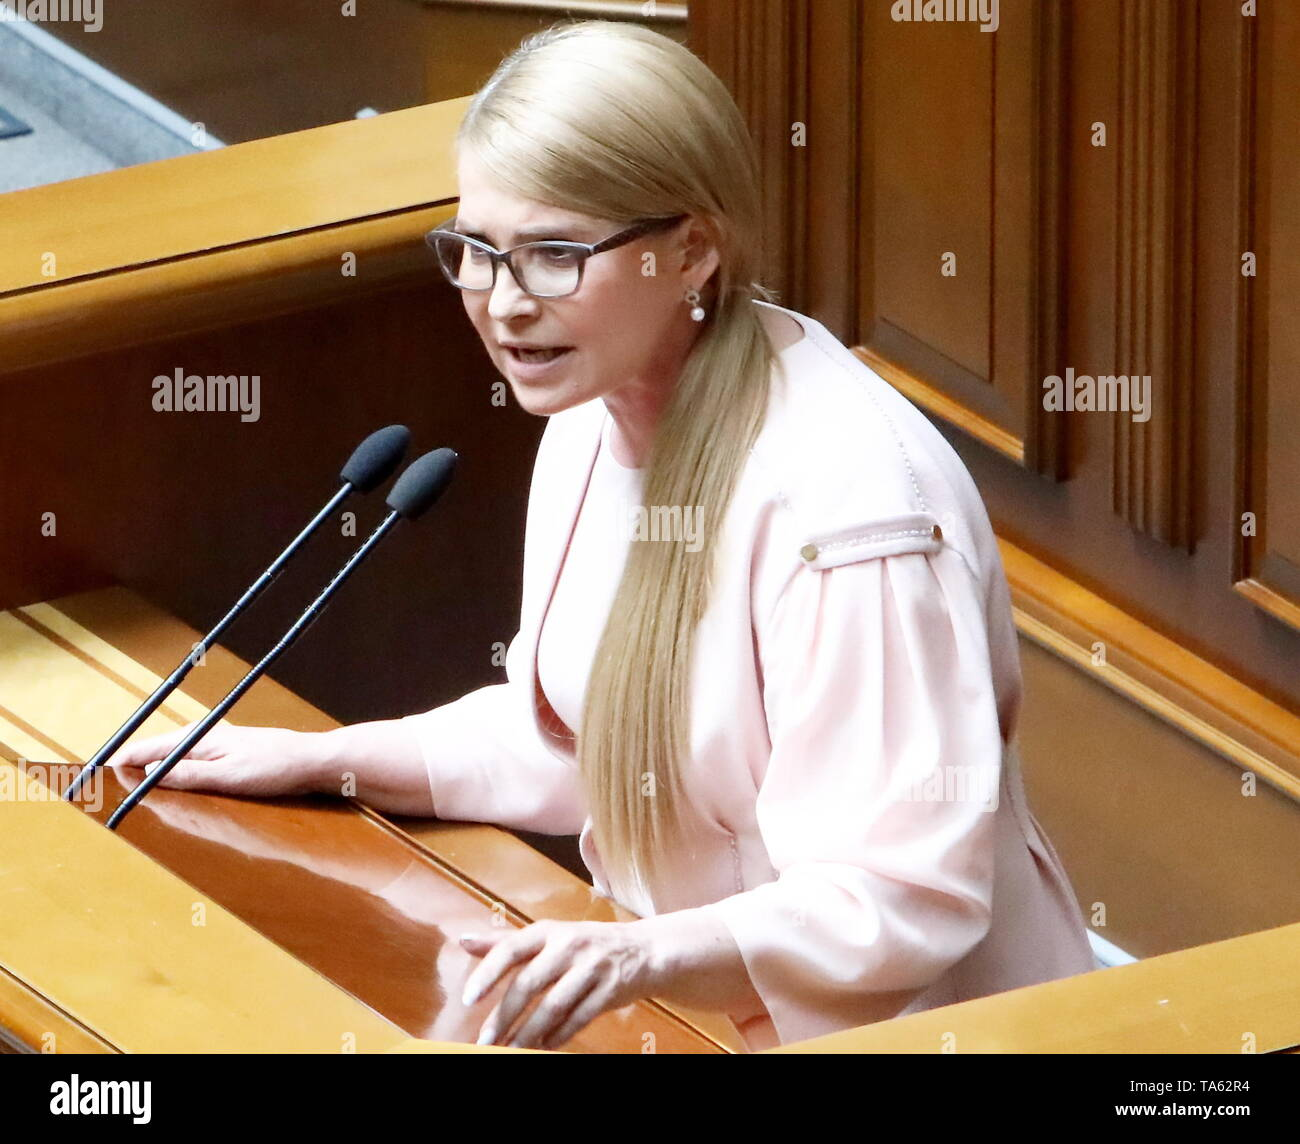 Kiev, Ukraine. 22nd May, 2019. KIEV, UKRAINE - MAY 22, 2019: Yulia Tymoshenko, leader of the Batkivshchyna [Fatherland] All-Ukrainian Union, speaks at a special meeting of the Verkhovna Rada, initiated by Ukraine's President Volodymyr Zelensky; the two draft laws brought forward by Zelensky to reform the electoral system have failed to gain enough votes to be introduced to the Ukrainian parliament. Pyotr Sivkov/TASS Credit: ITAR-TASS News Agency/Alamy Live News - Stock Image